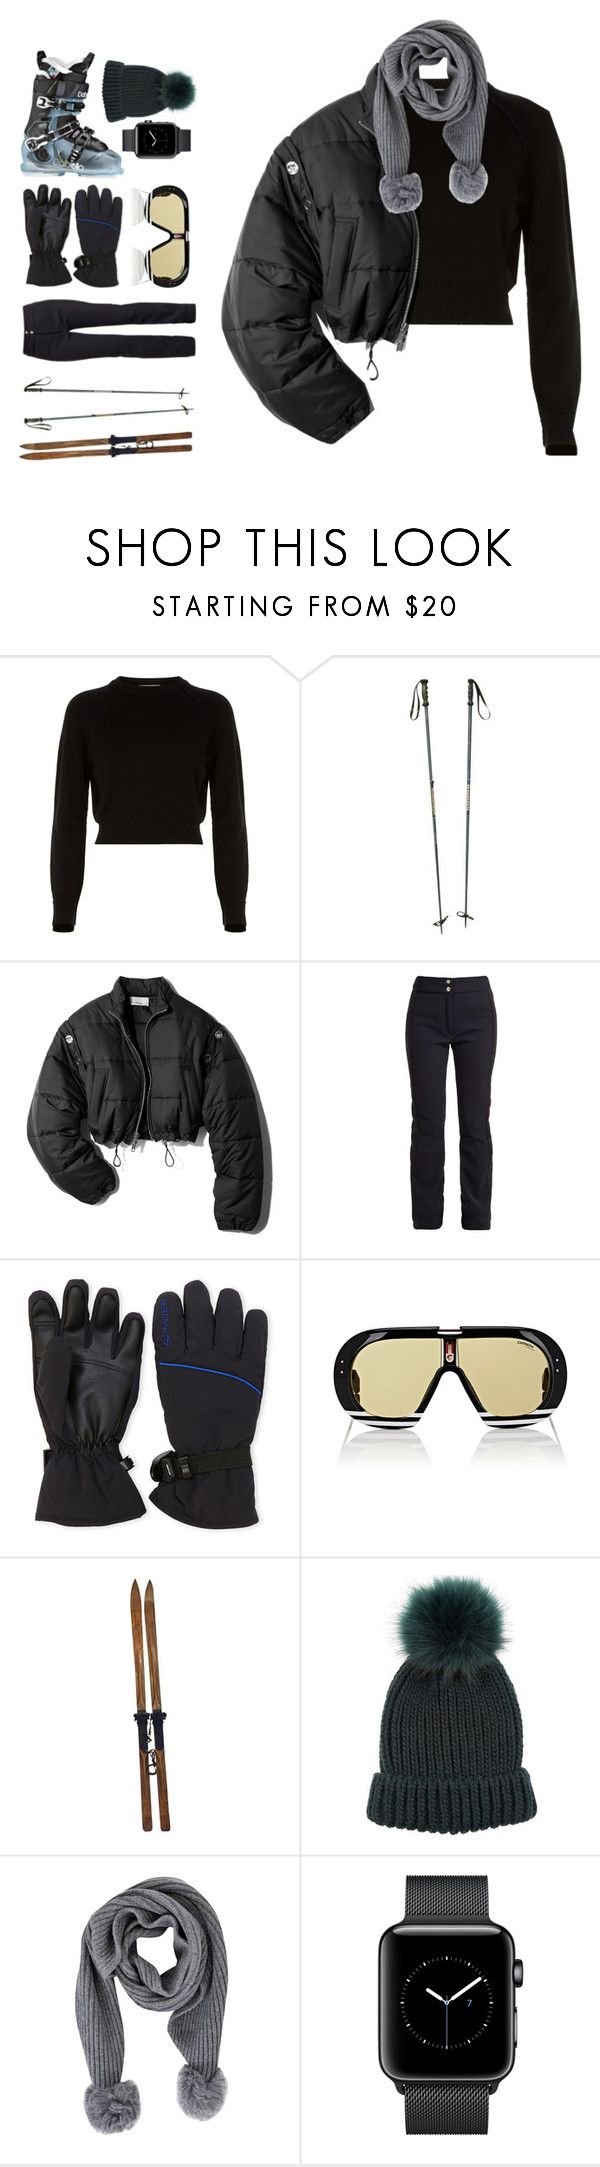 """Teresa"" by brie-the-pixie ❤ liked on Polyvore featuring Helmut Lang, 3.1 Phillip Lim, Fusalp, Spyder, Carrera, L.L.Bean and Acne Studios"